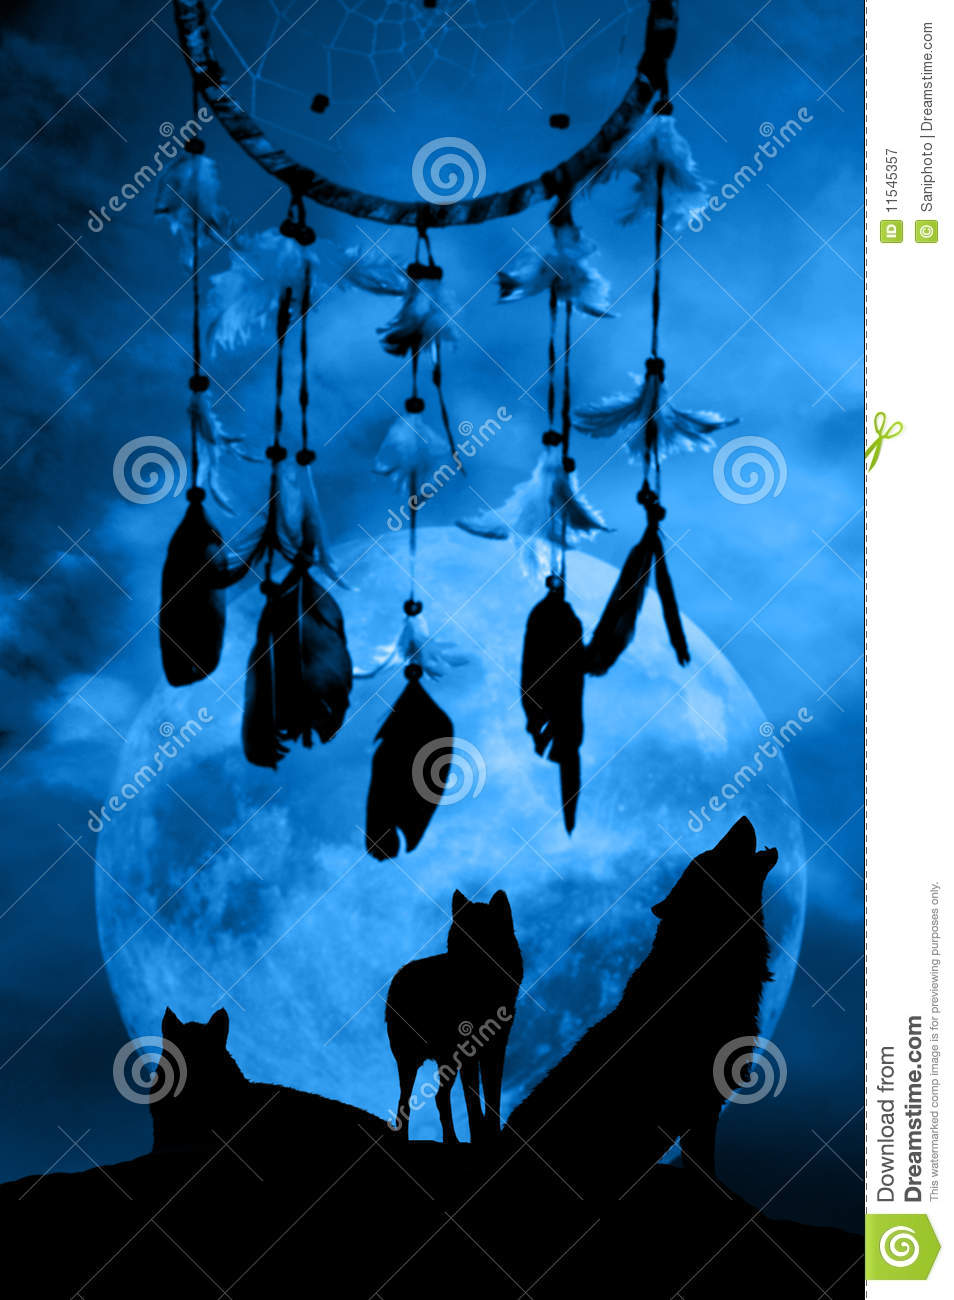 Native American Wallpaper Iphone Wolves And Dreamcatcher Stock Illustration Image Of